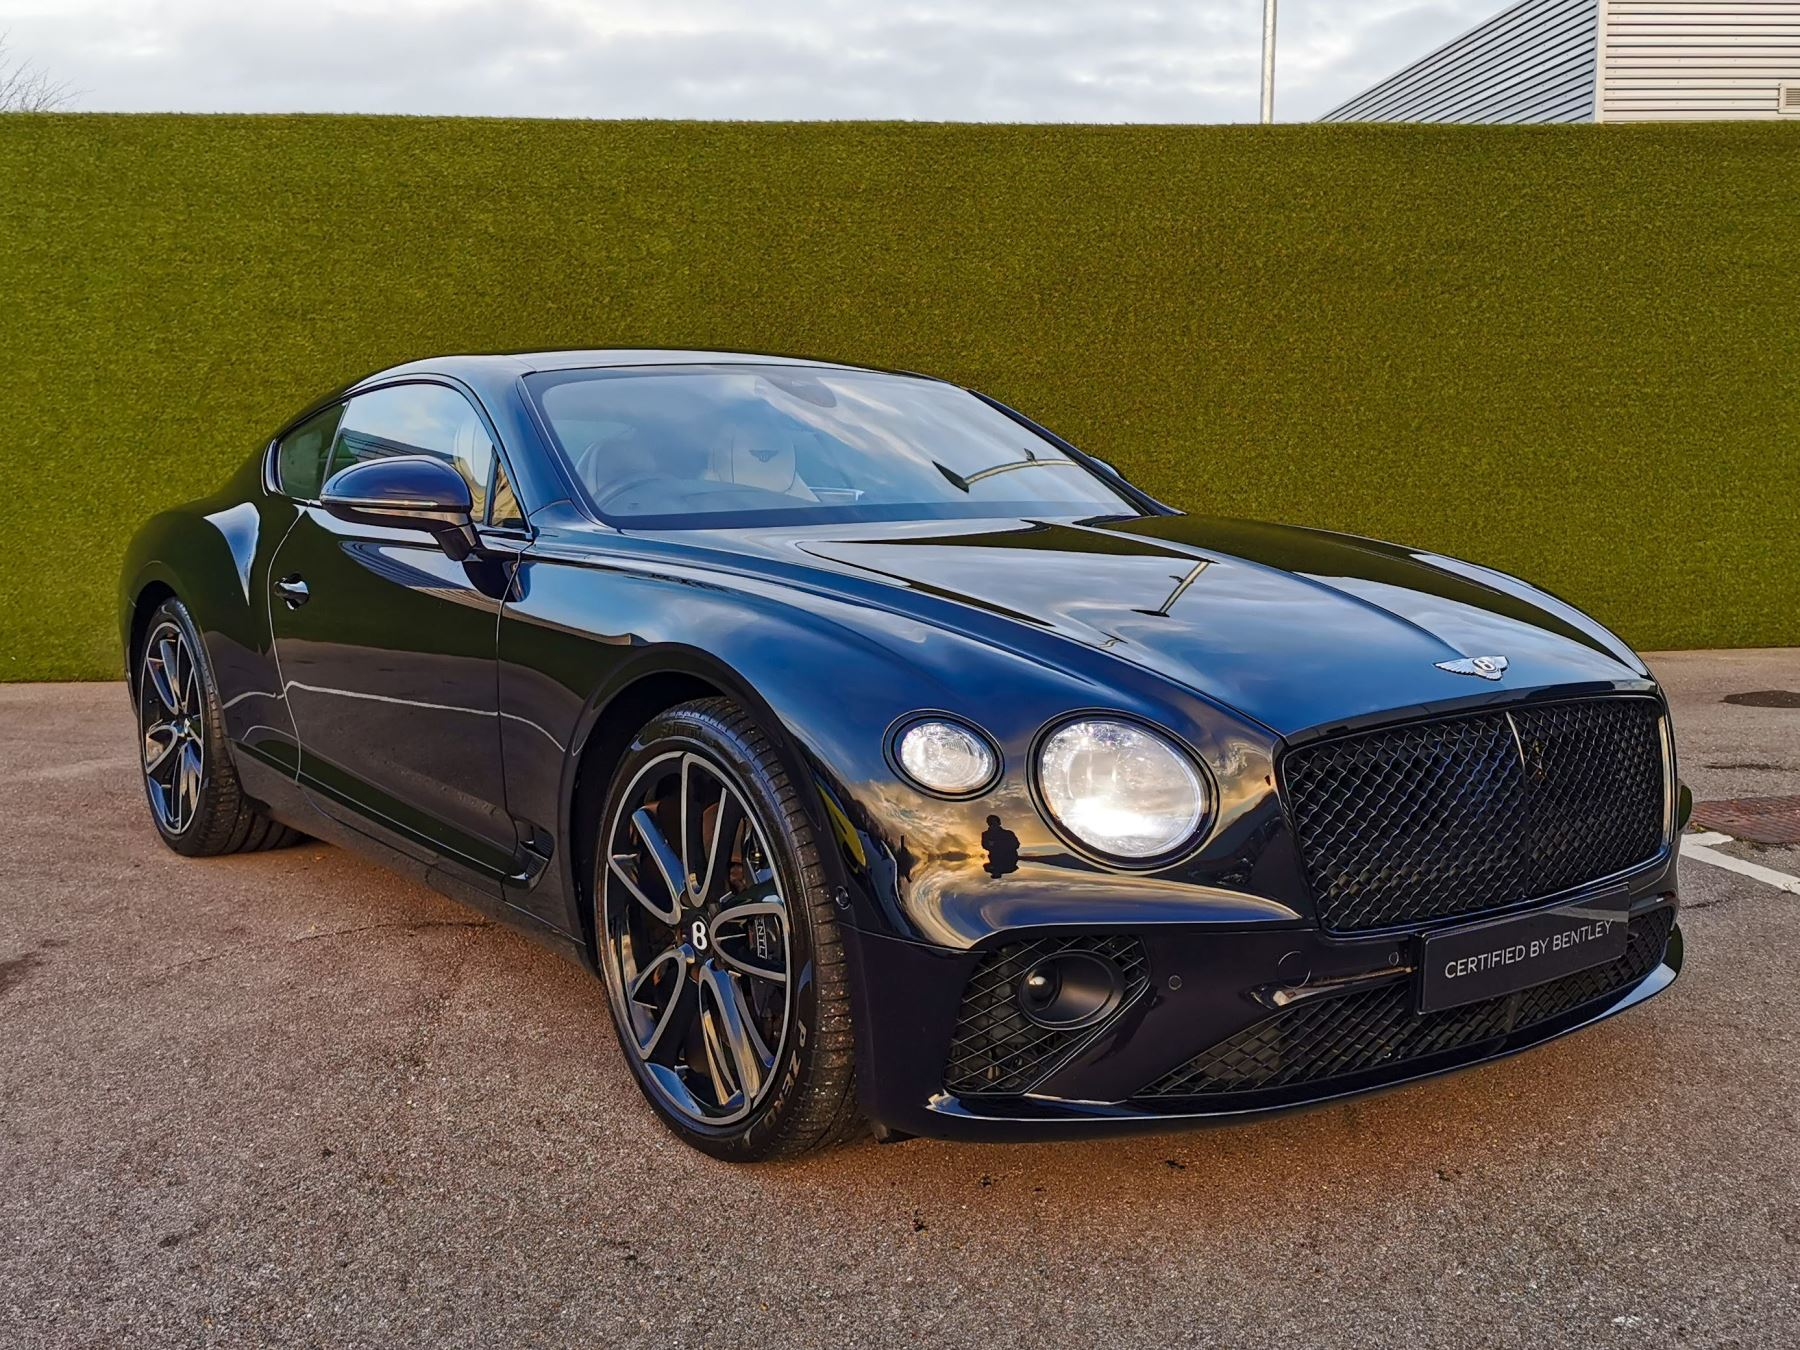 Bentley Continental GT 6.0 W12 2dr Automatic Coupe (2019)